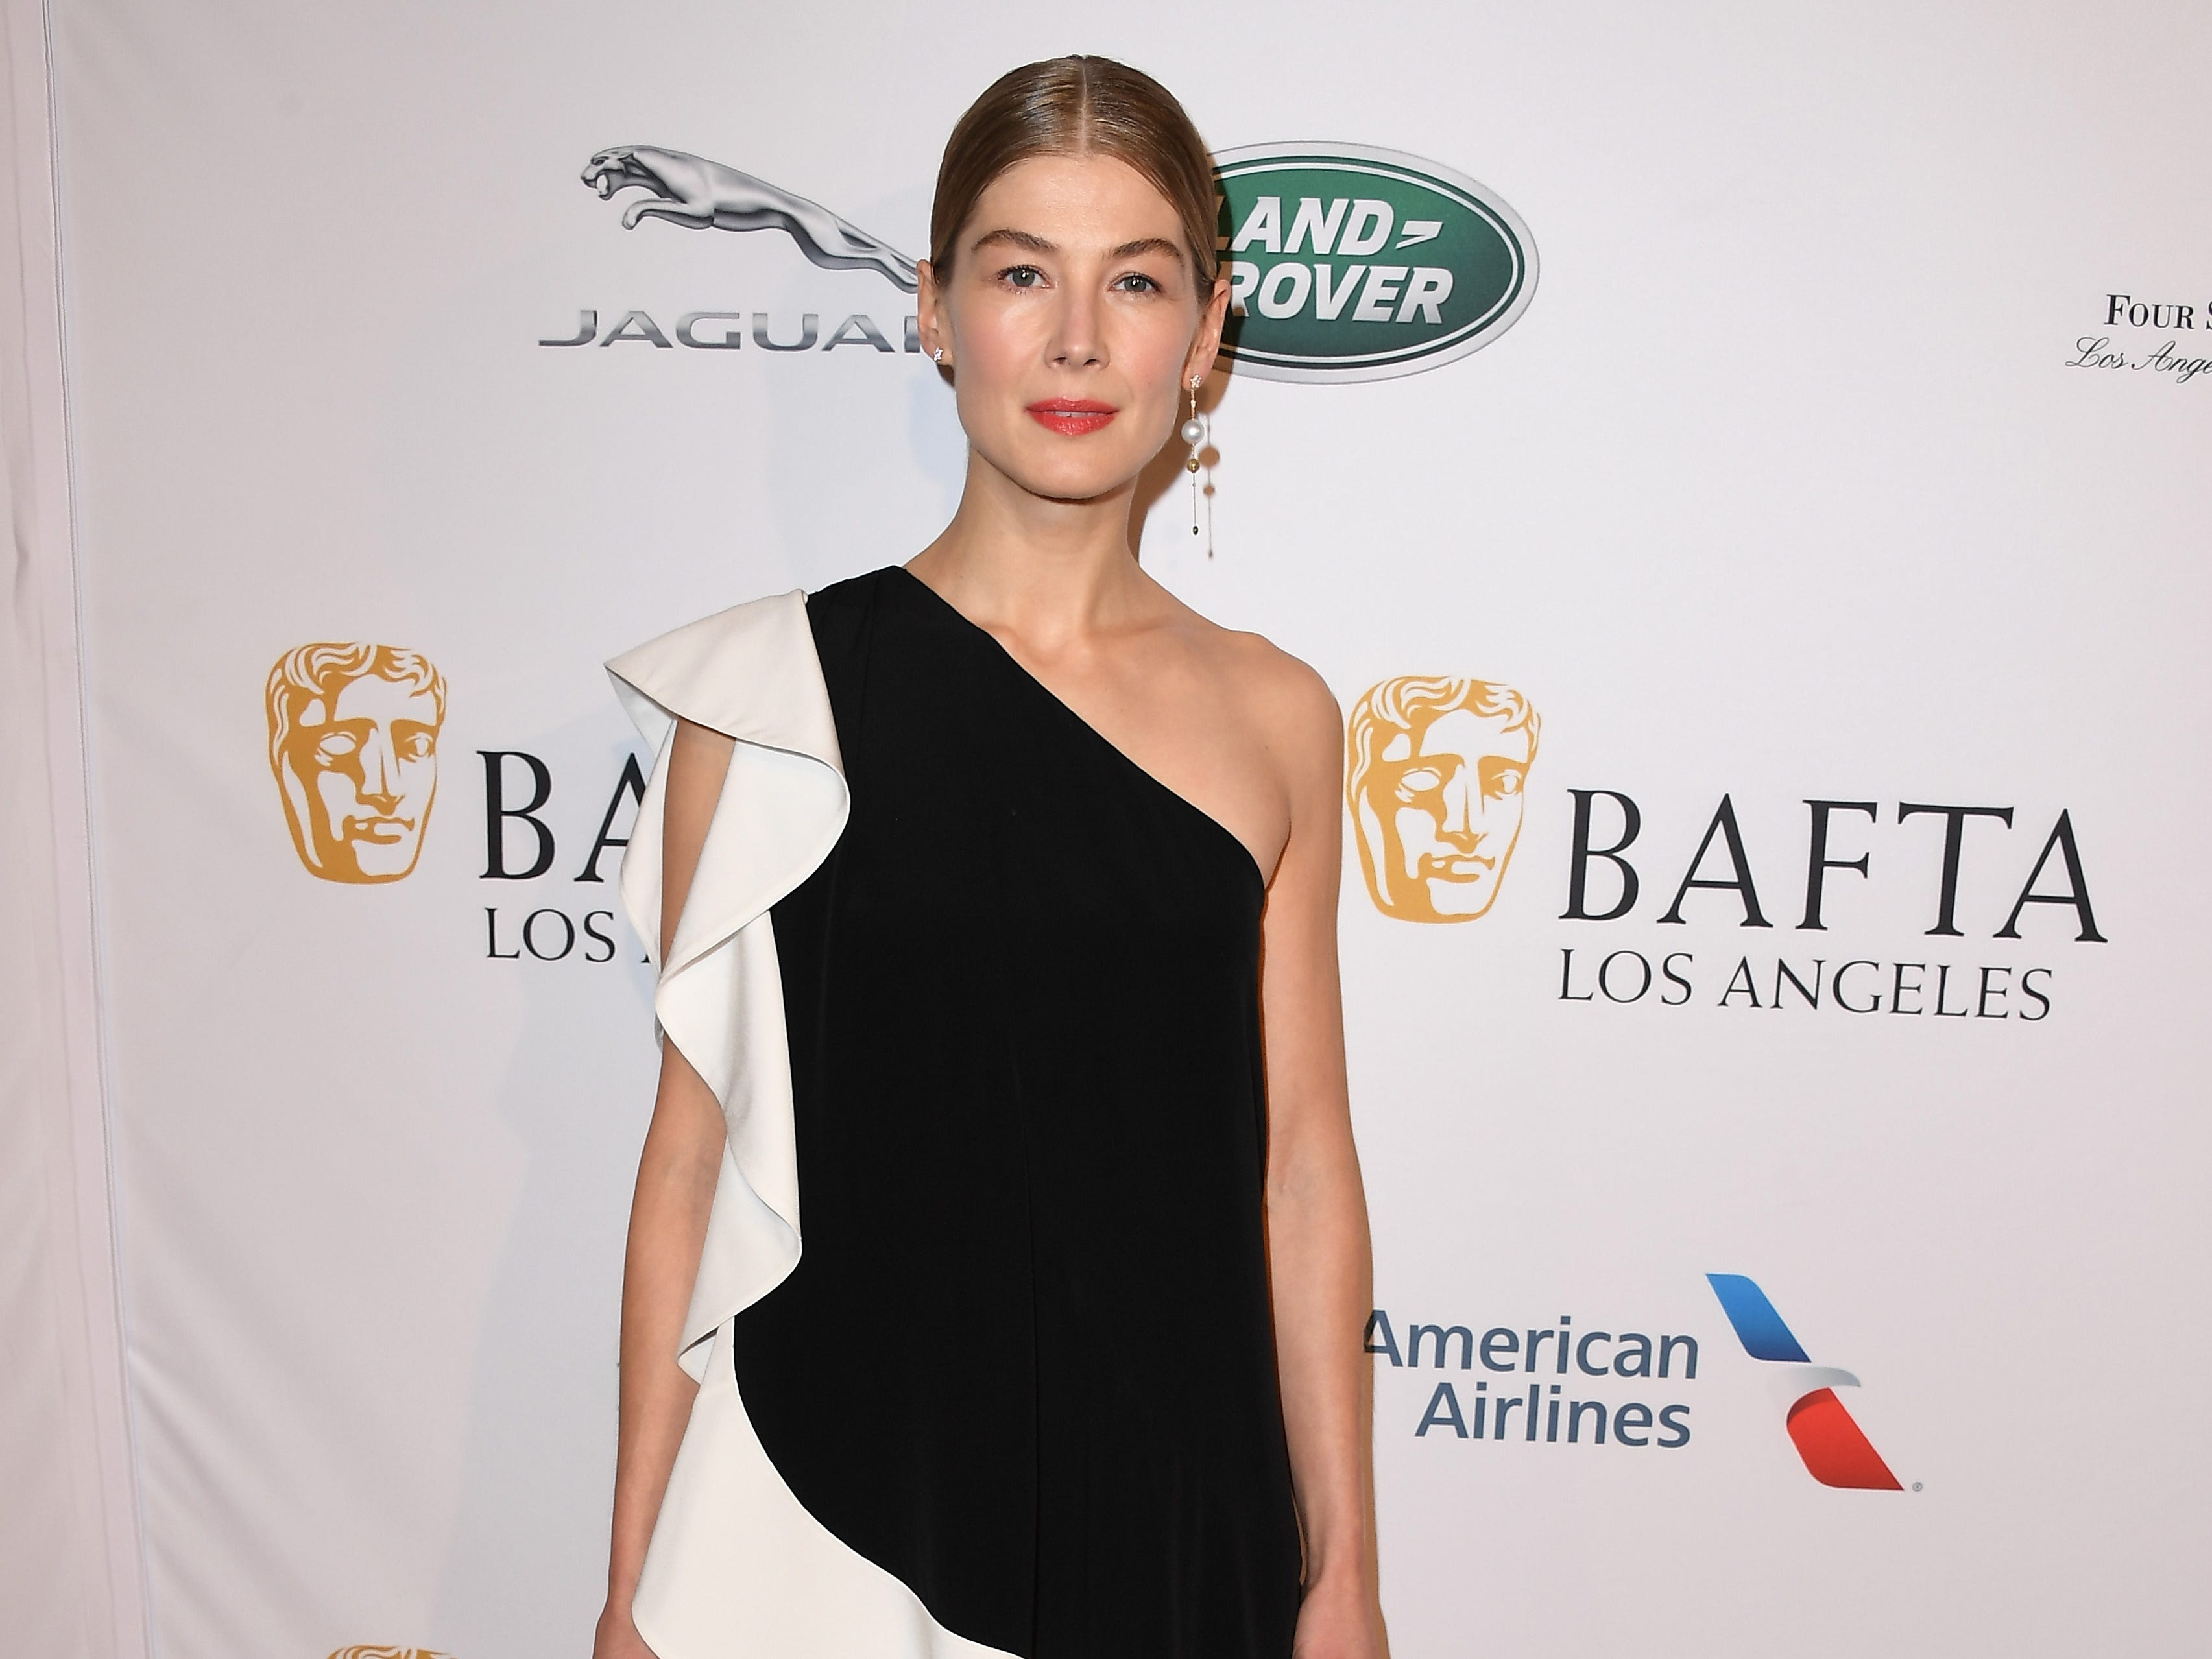 LOS ANGELES, CA - JANUARY 05:  Rosamund Pike attends The BAFTA Los Angeles Tea Party at Four Seasons Hotel Los Angeles at Beverly Hills on January 5, 2019 in Los Angeles, California.  (Photo by Steve Granitz/WireImage) ORG XMIT: 775261683 ORIG FILE ID: 1077925826